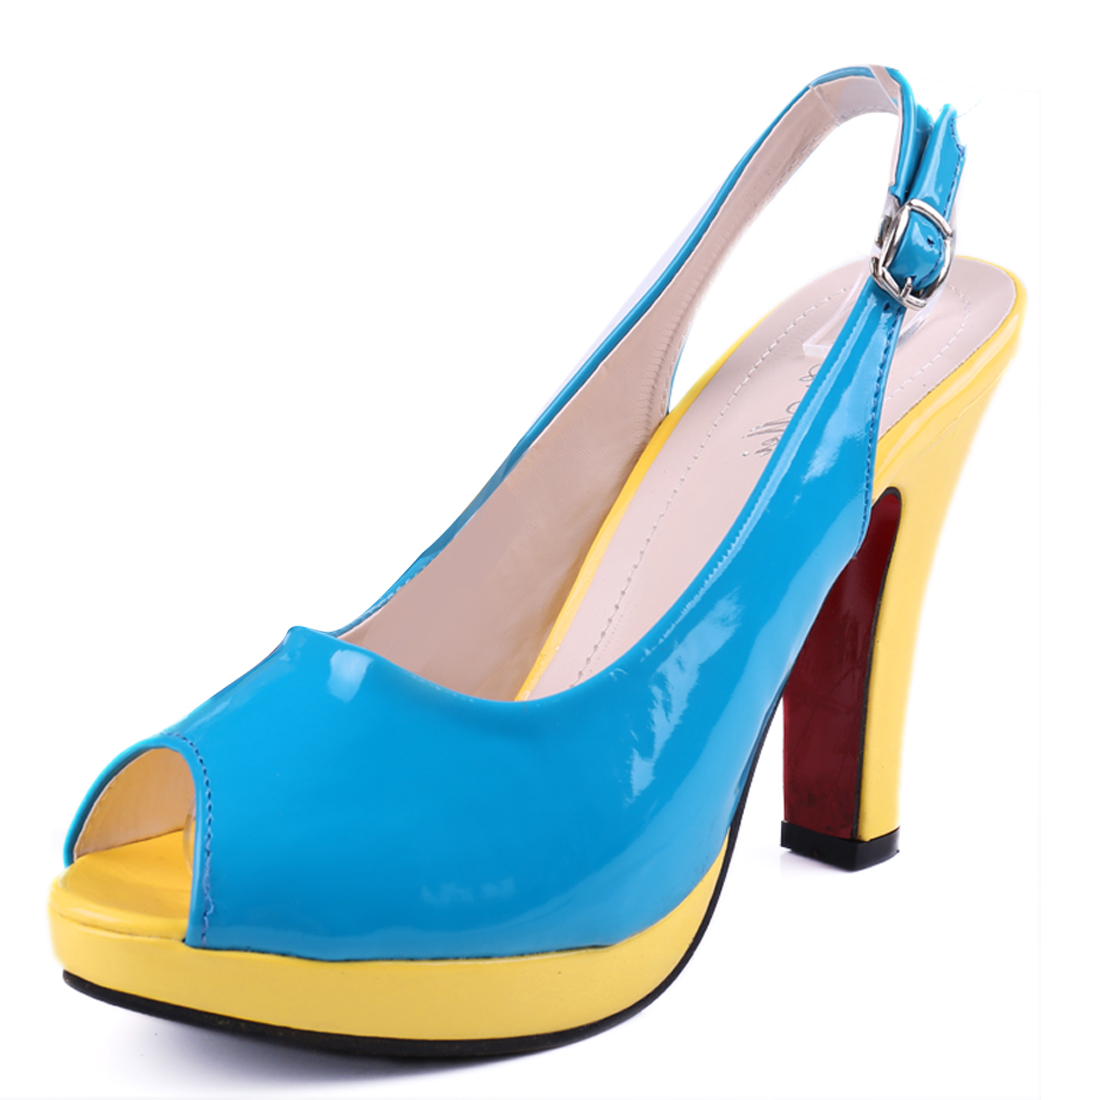 Woman Chic Open Toe Buckle Strap Design Blue Yellow Platform Pumps US 7